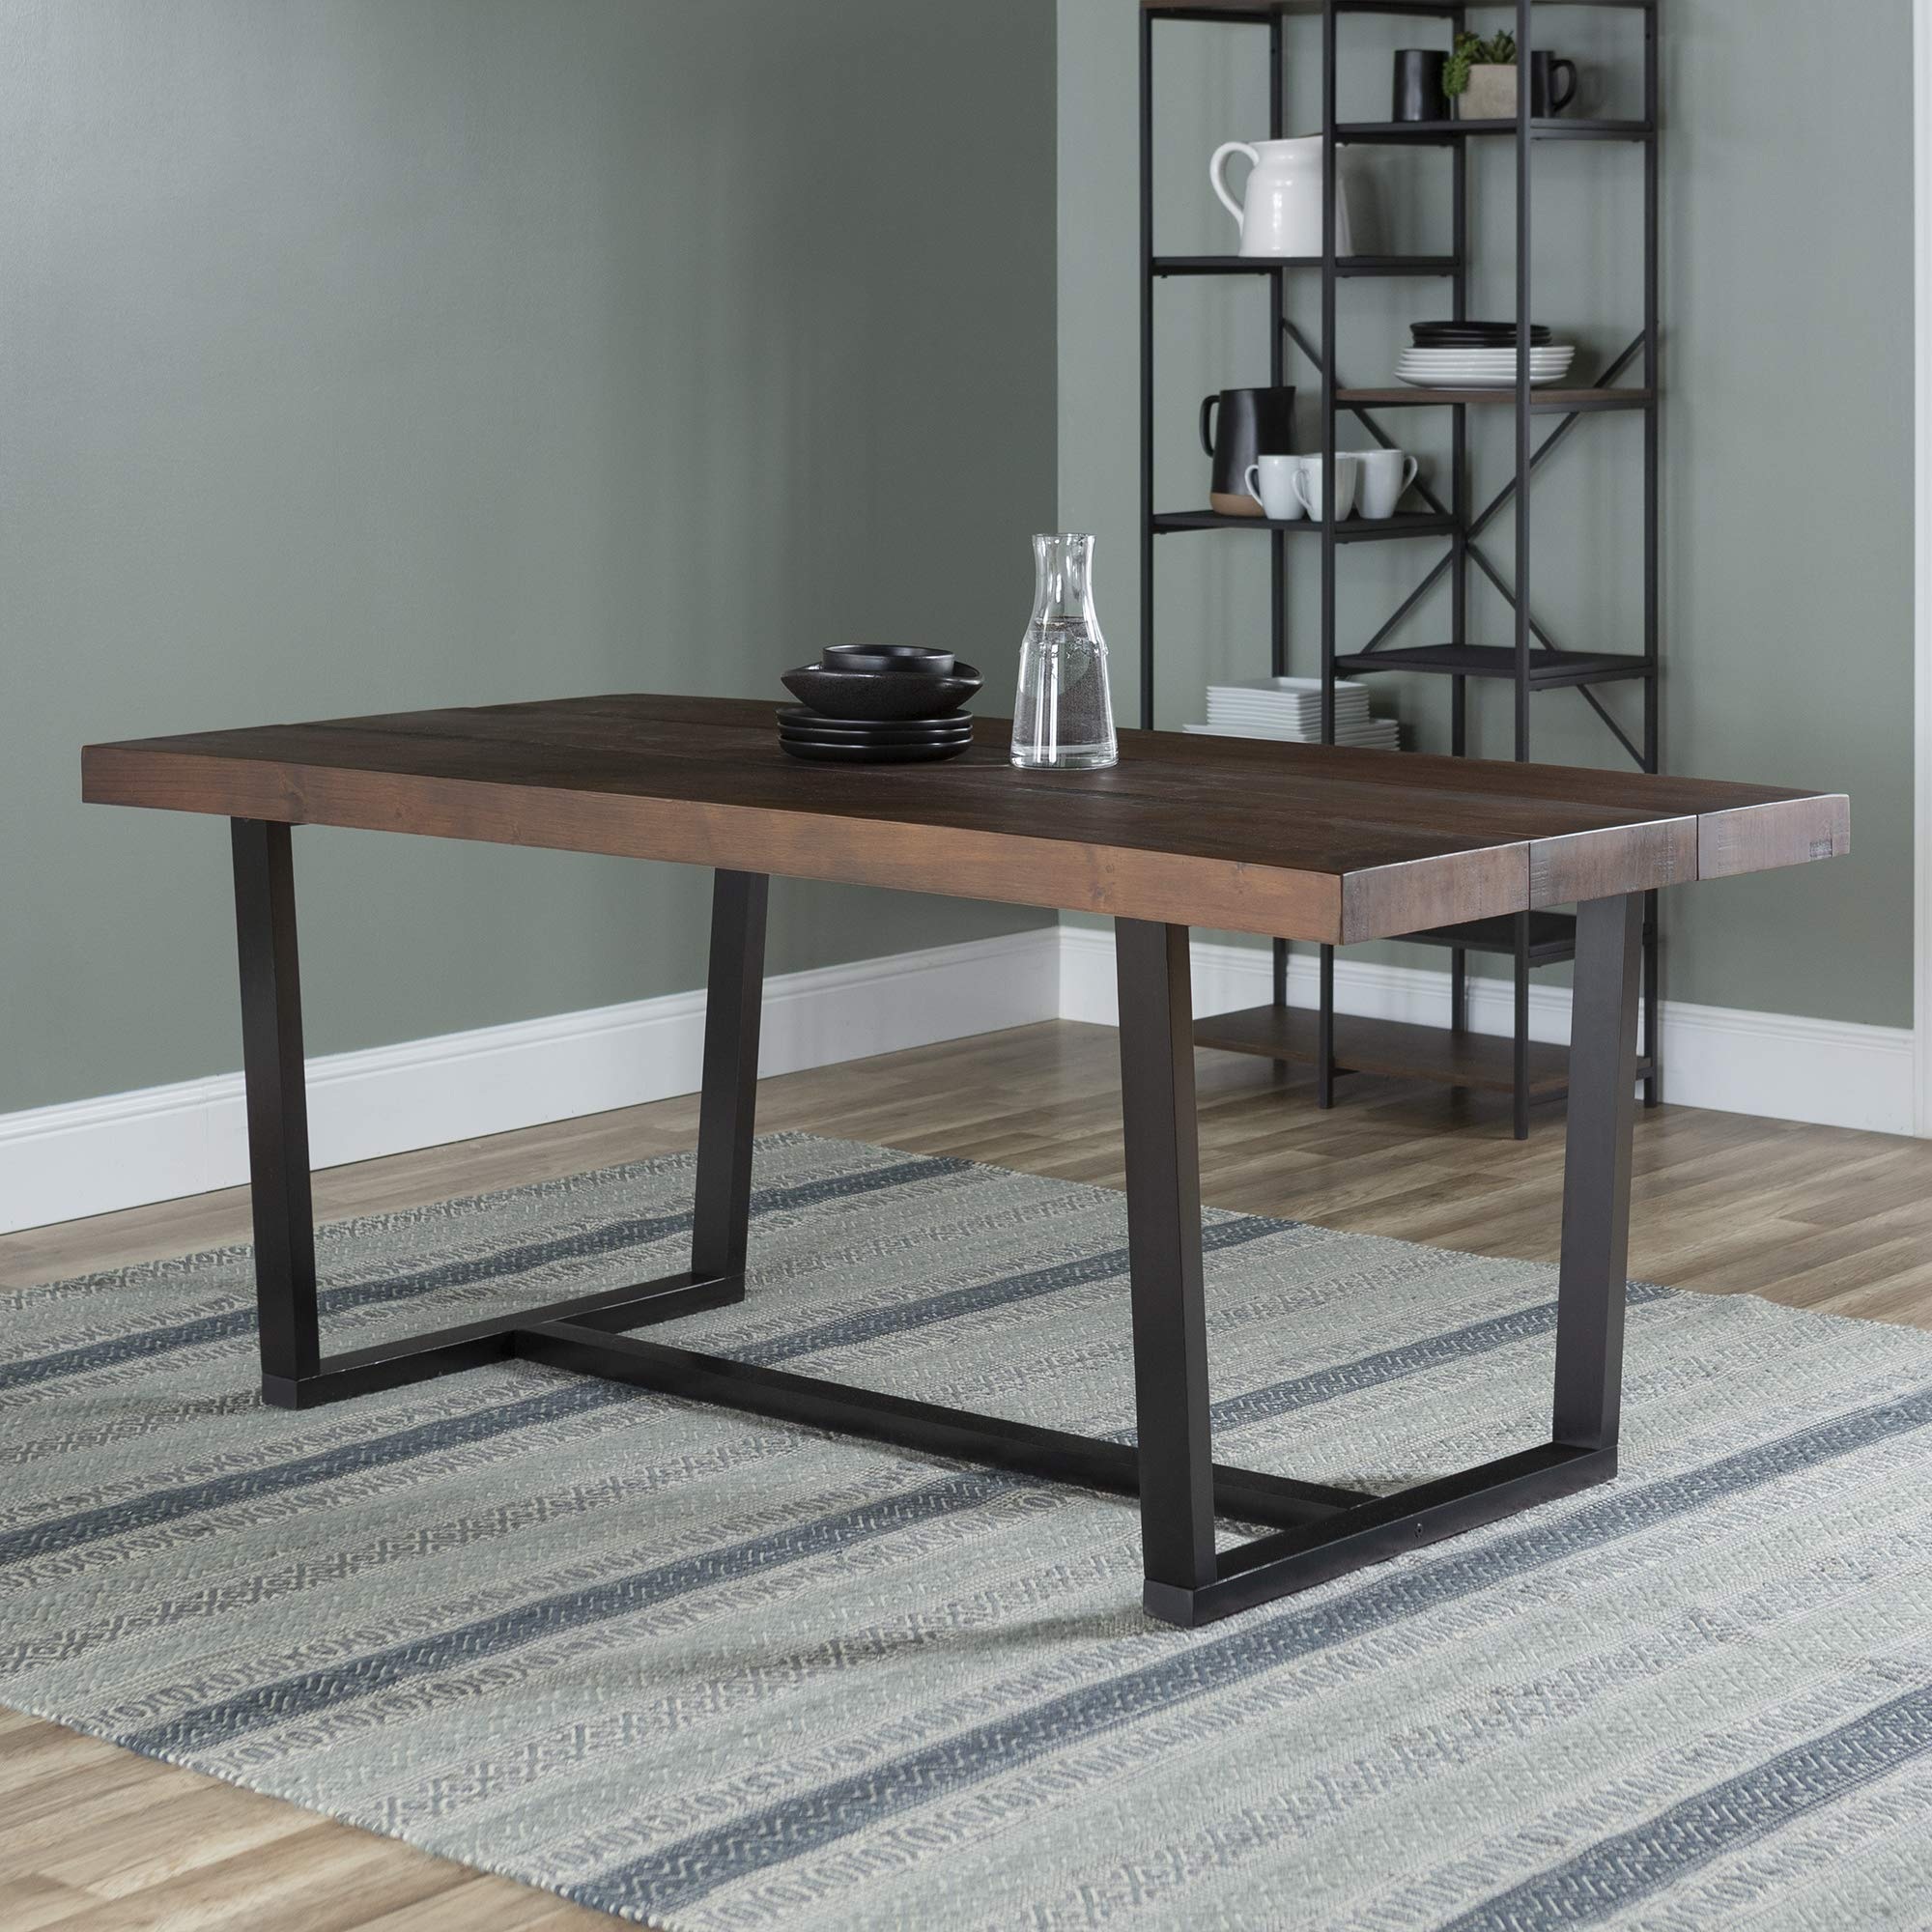 WE Furniture AZW72DSWMA Dining Table, 72'', Mahogany by WE Furniture